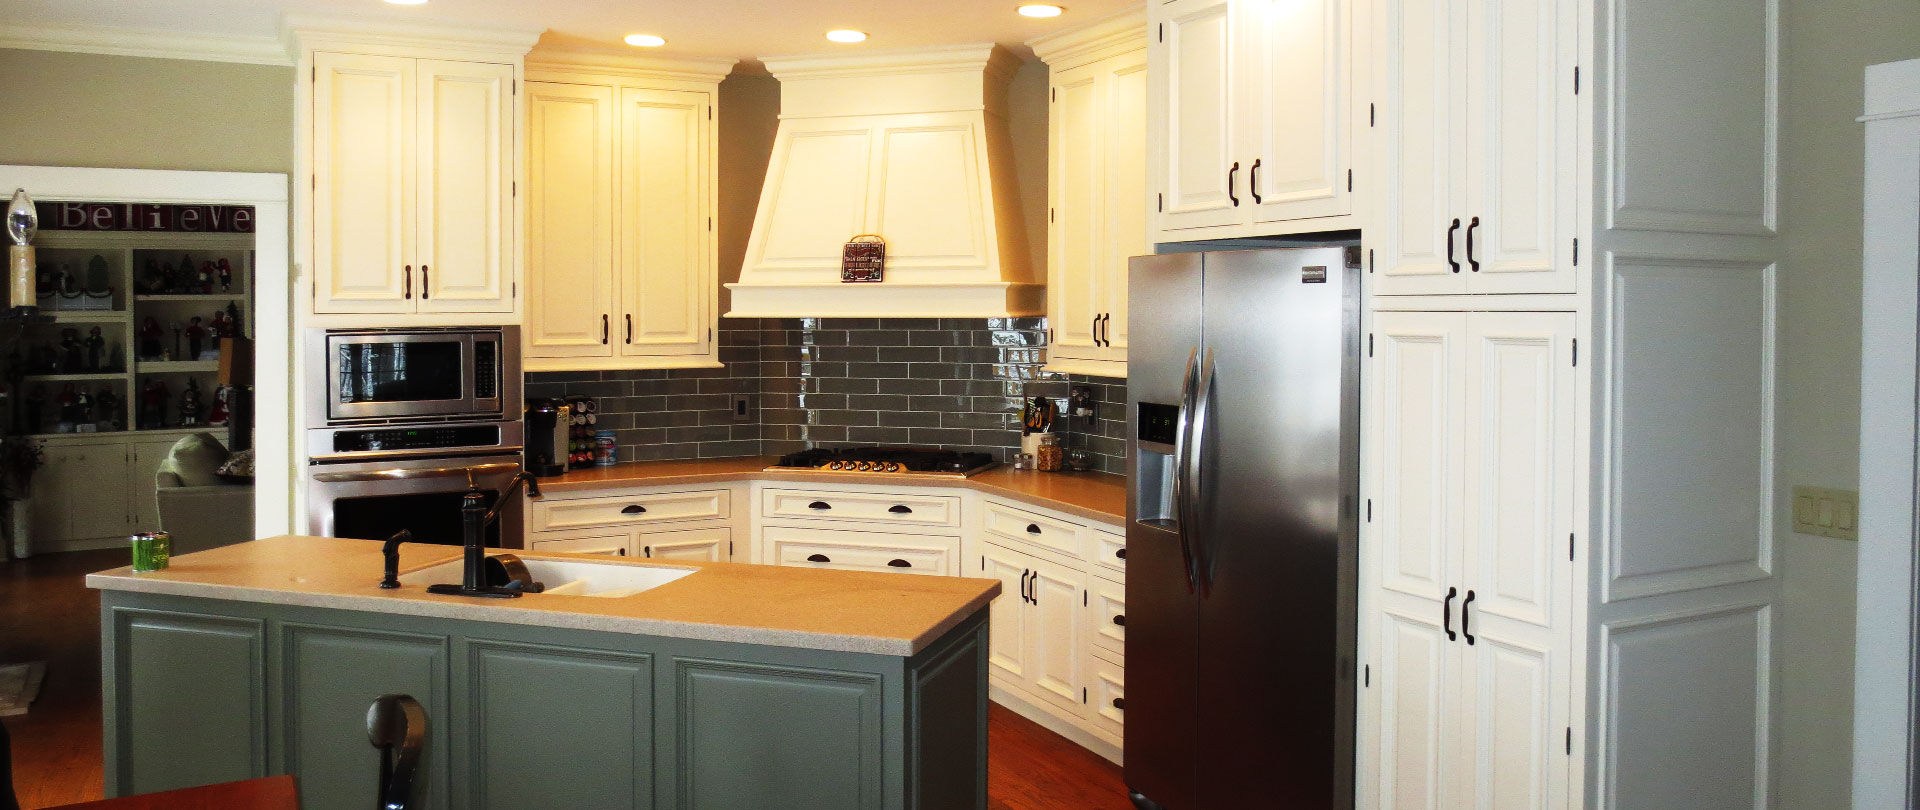 Cabinet Refacing (50% the Cost of New!) Peoria, IL ...